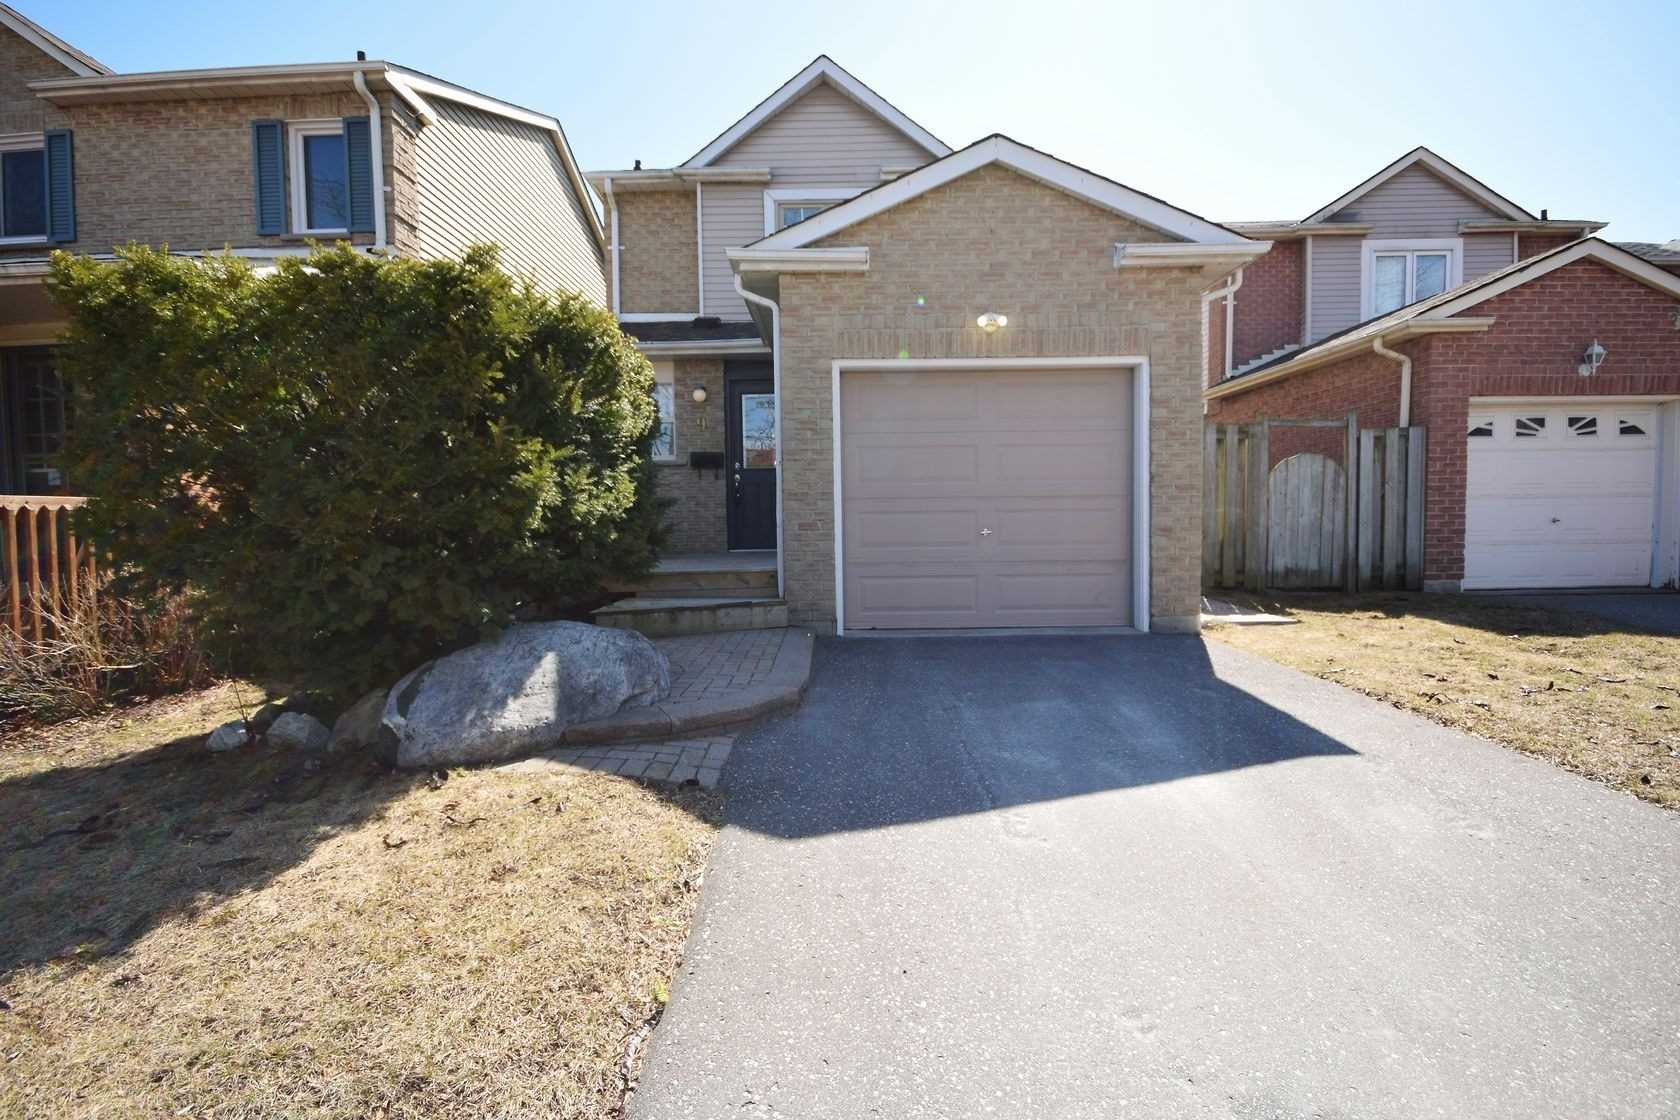 pictures of house for sale MLS: E4728855 located at 9 Greenfield Cres, Whitby L1N7G2